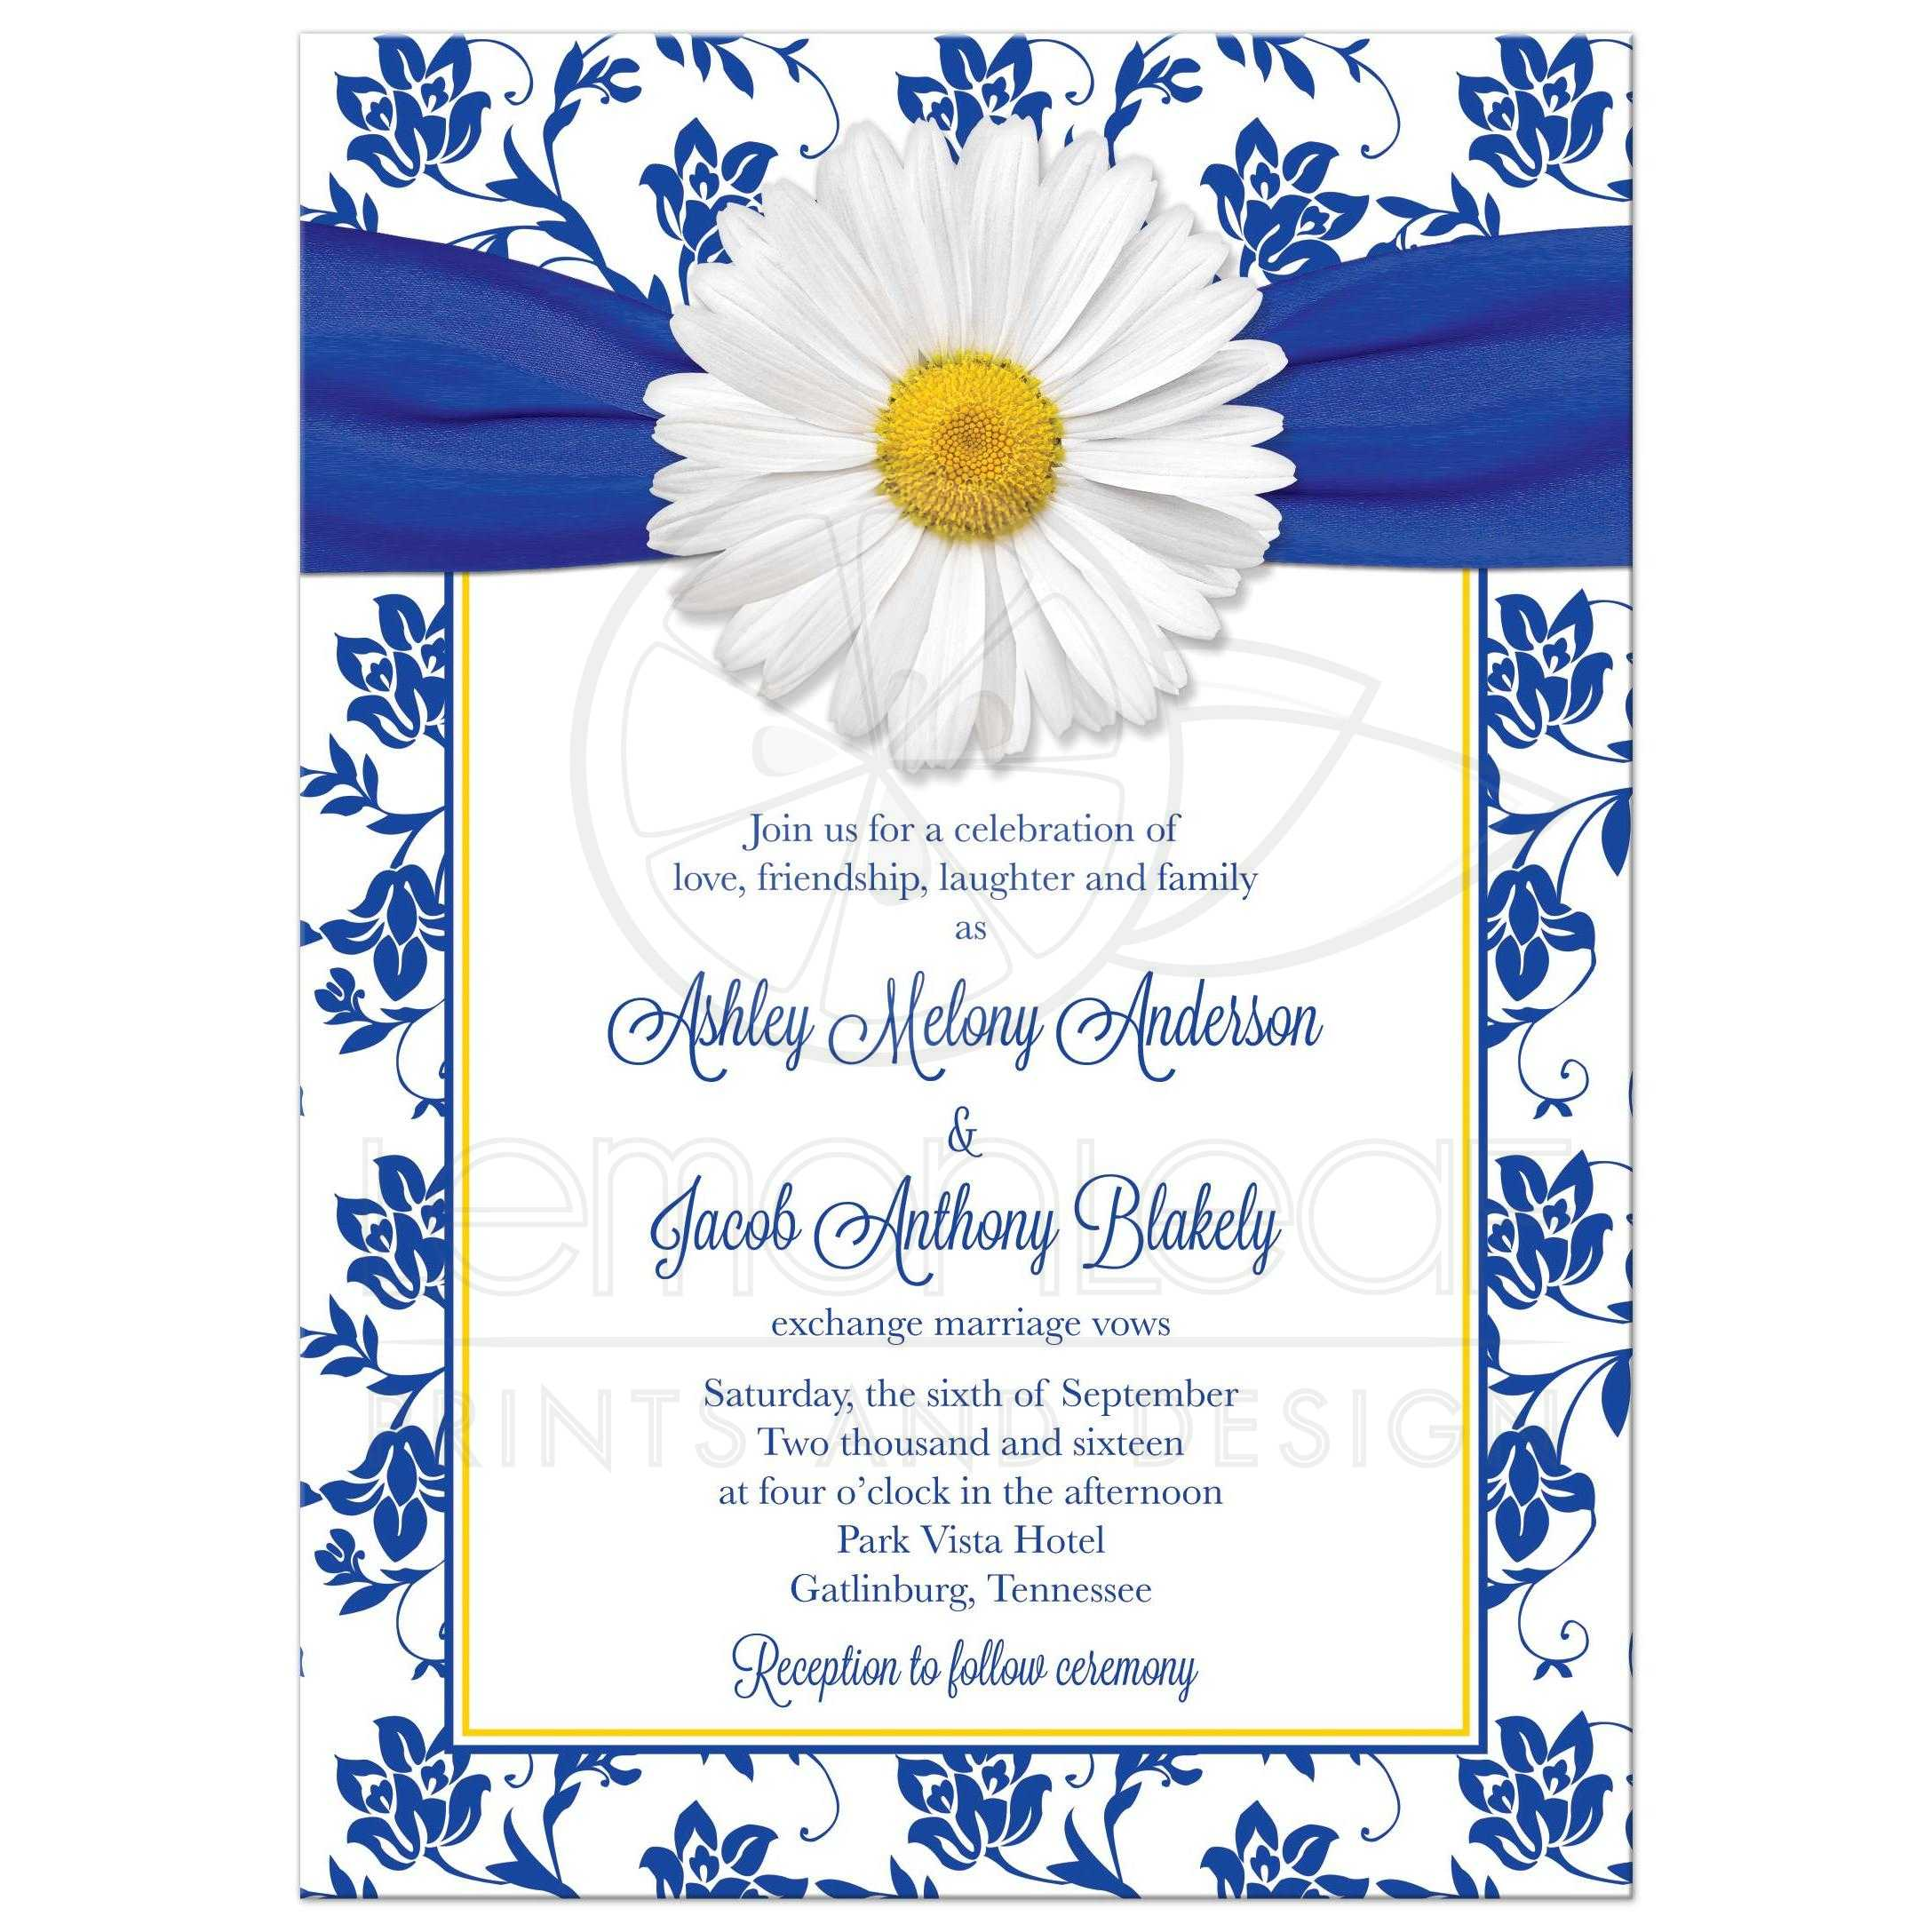 White Shasta Daisy And Royal Blue Fl Damask Ribbon Wedding Invitation Front